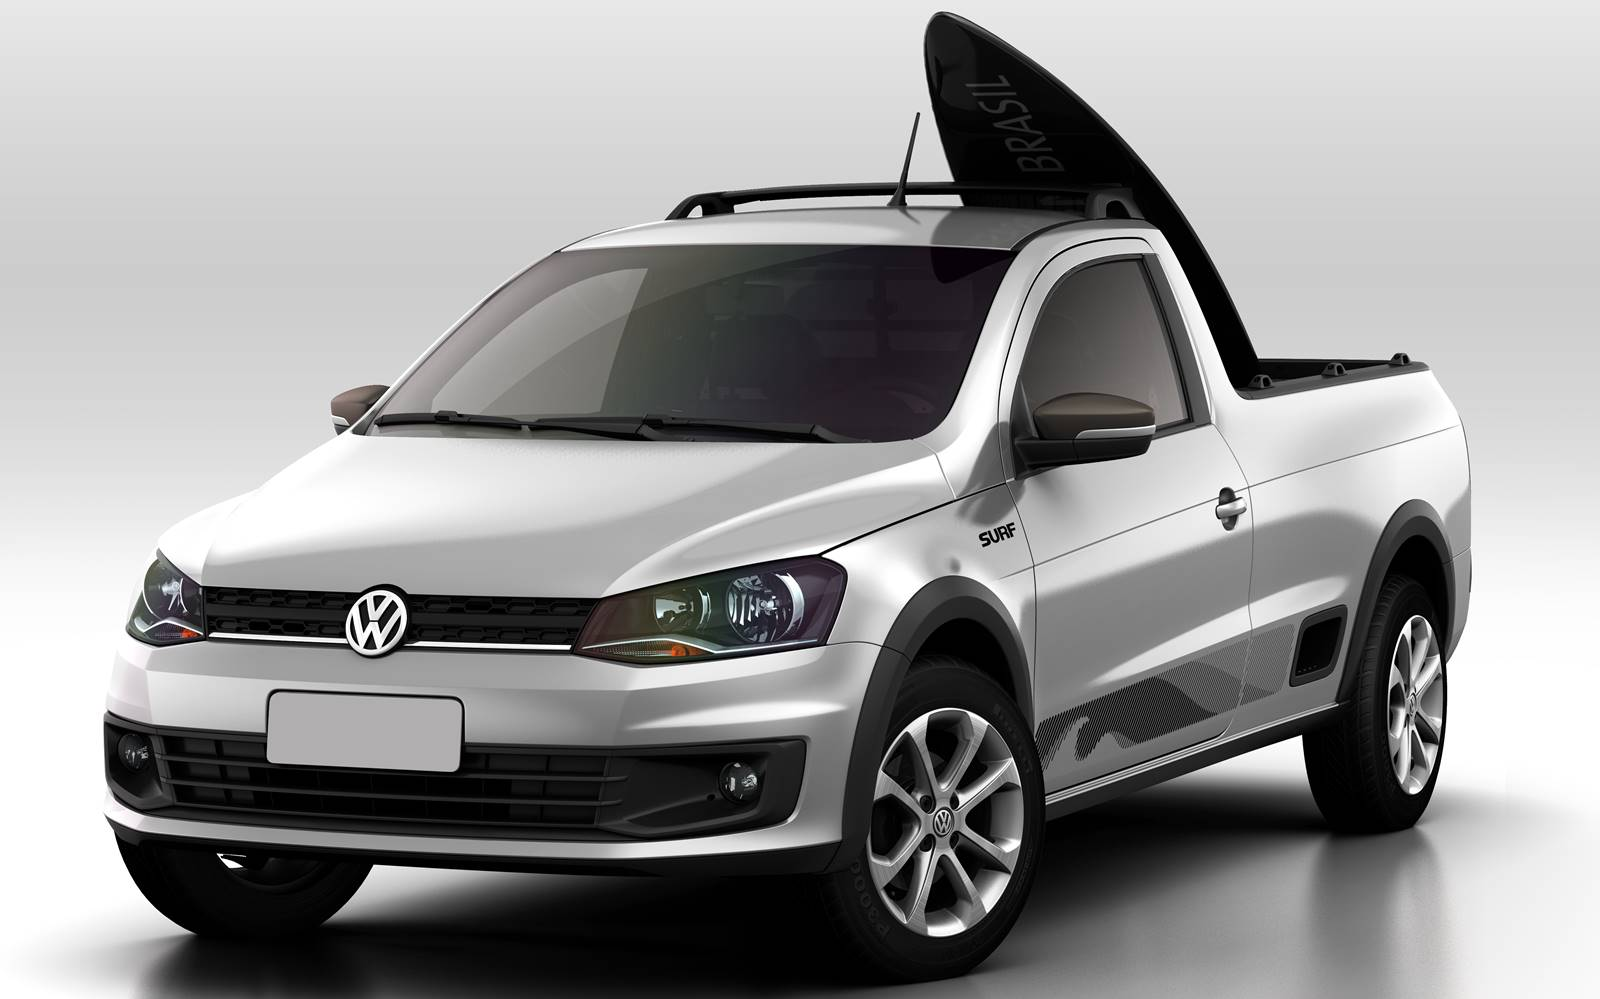 volkswagen saveiro surf 2015 s rie especial lan ada em sp car blog br. Black Bedroom Furniture Sets. Home Design Ideas